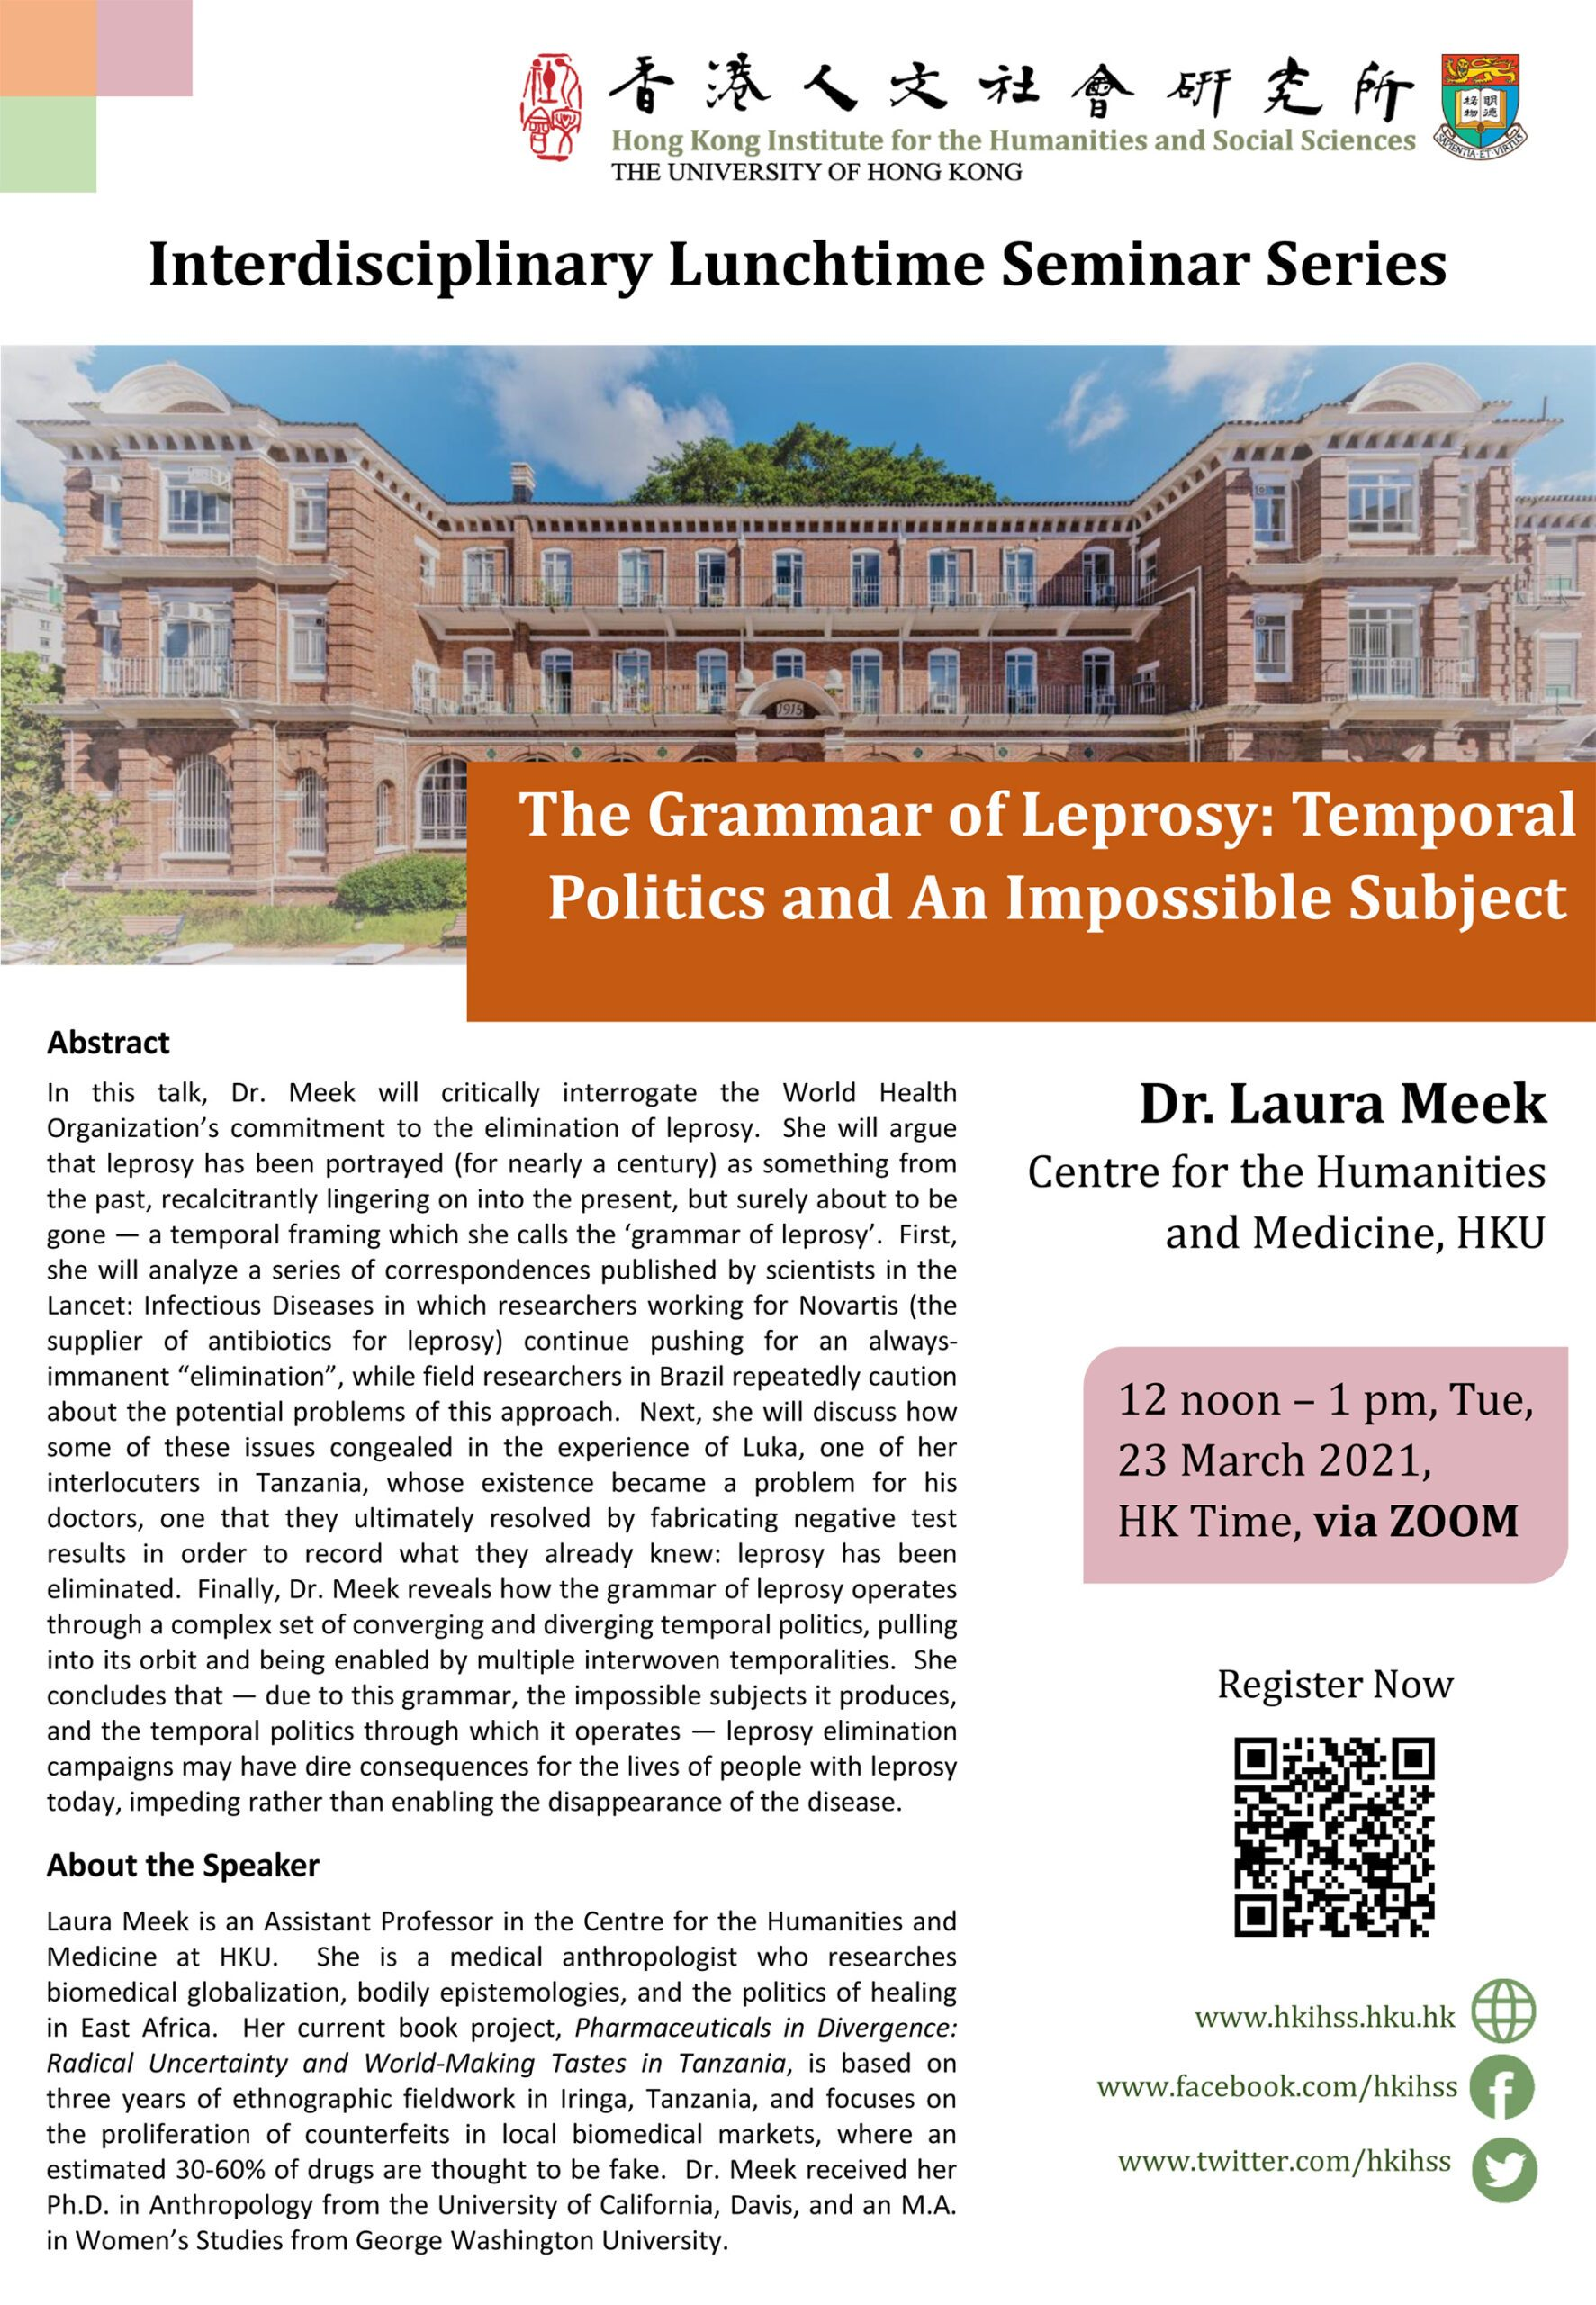 """Interdisciplinary Lunchtime Seminar on """"The Grammar of Leprosy: Temporal Politics and An Impossible Subject"""" by Dr. Laura Meek (March 23, 2021)"""